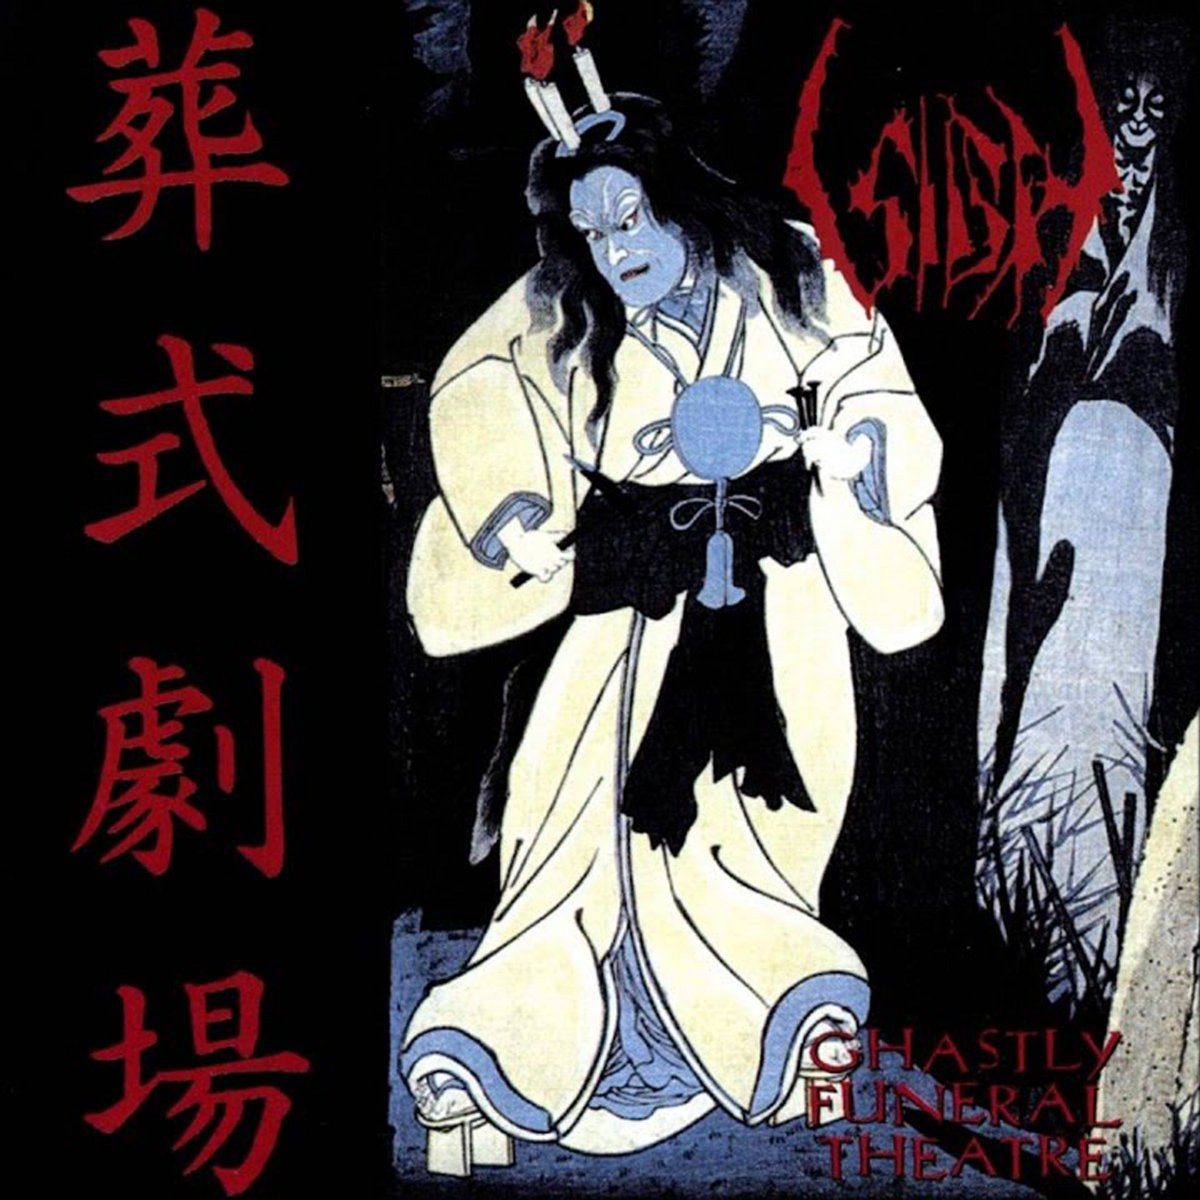 Review for Sigh - 葬式劇場 (Ghastly Funeral Theatre)